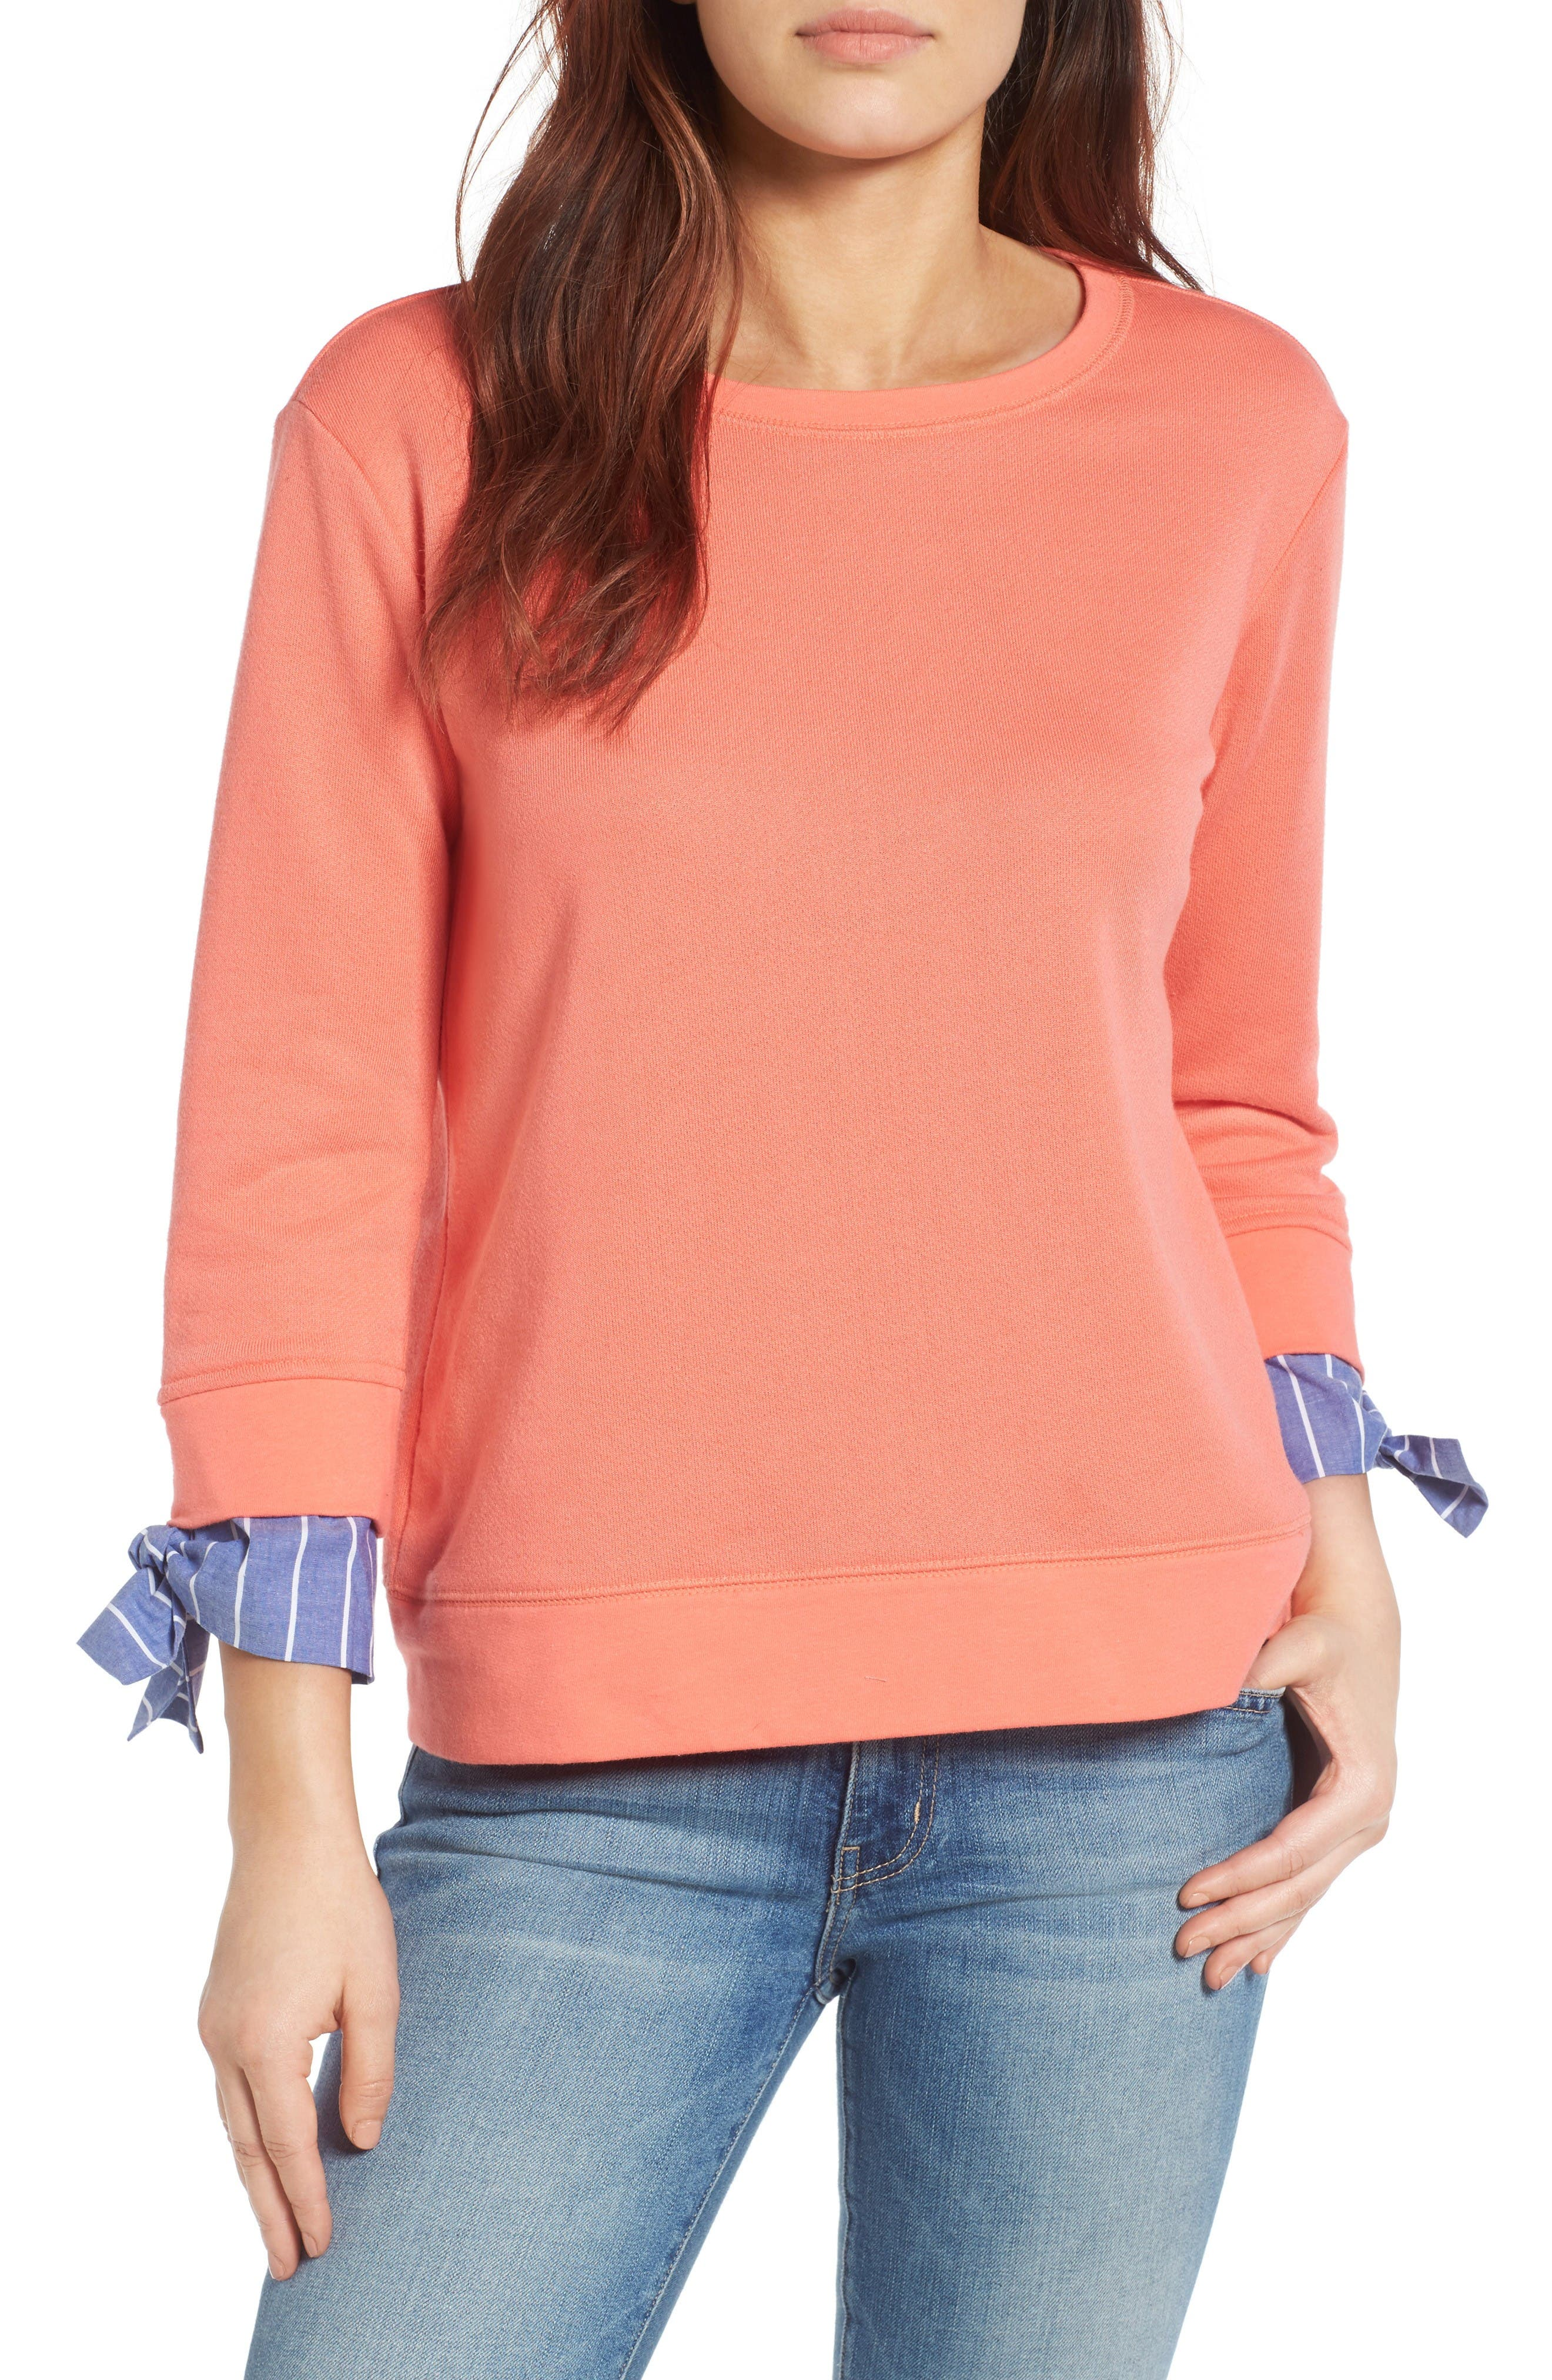 Alternate Image 1 Selected - Gibson Tie Sleeve Sweatshirt (Regular & Petite)